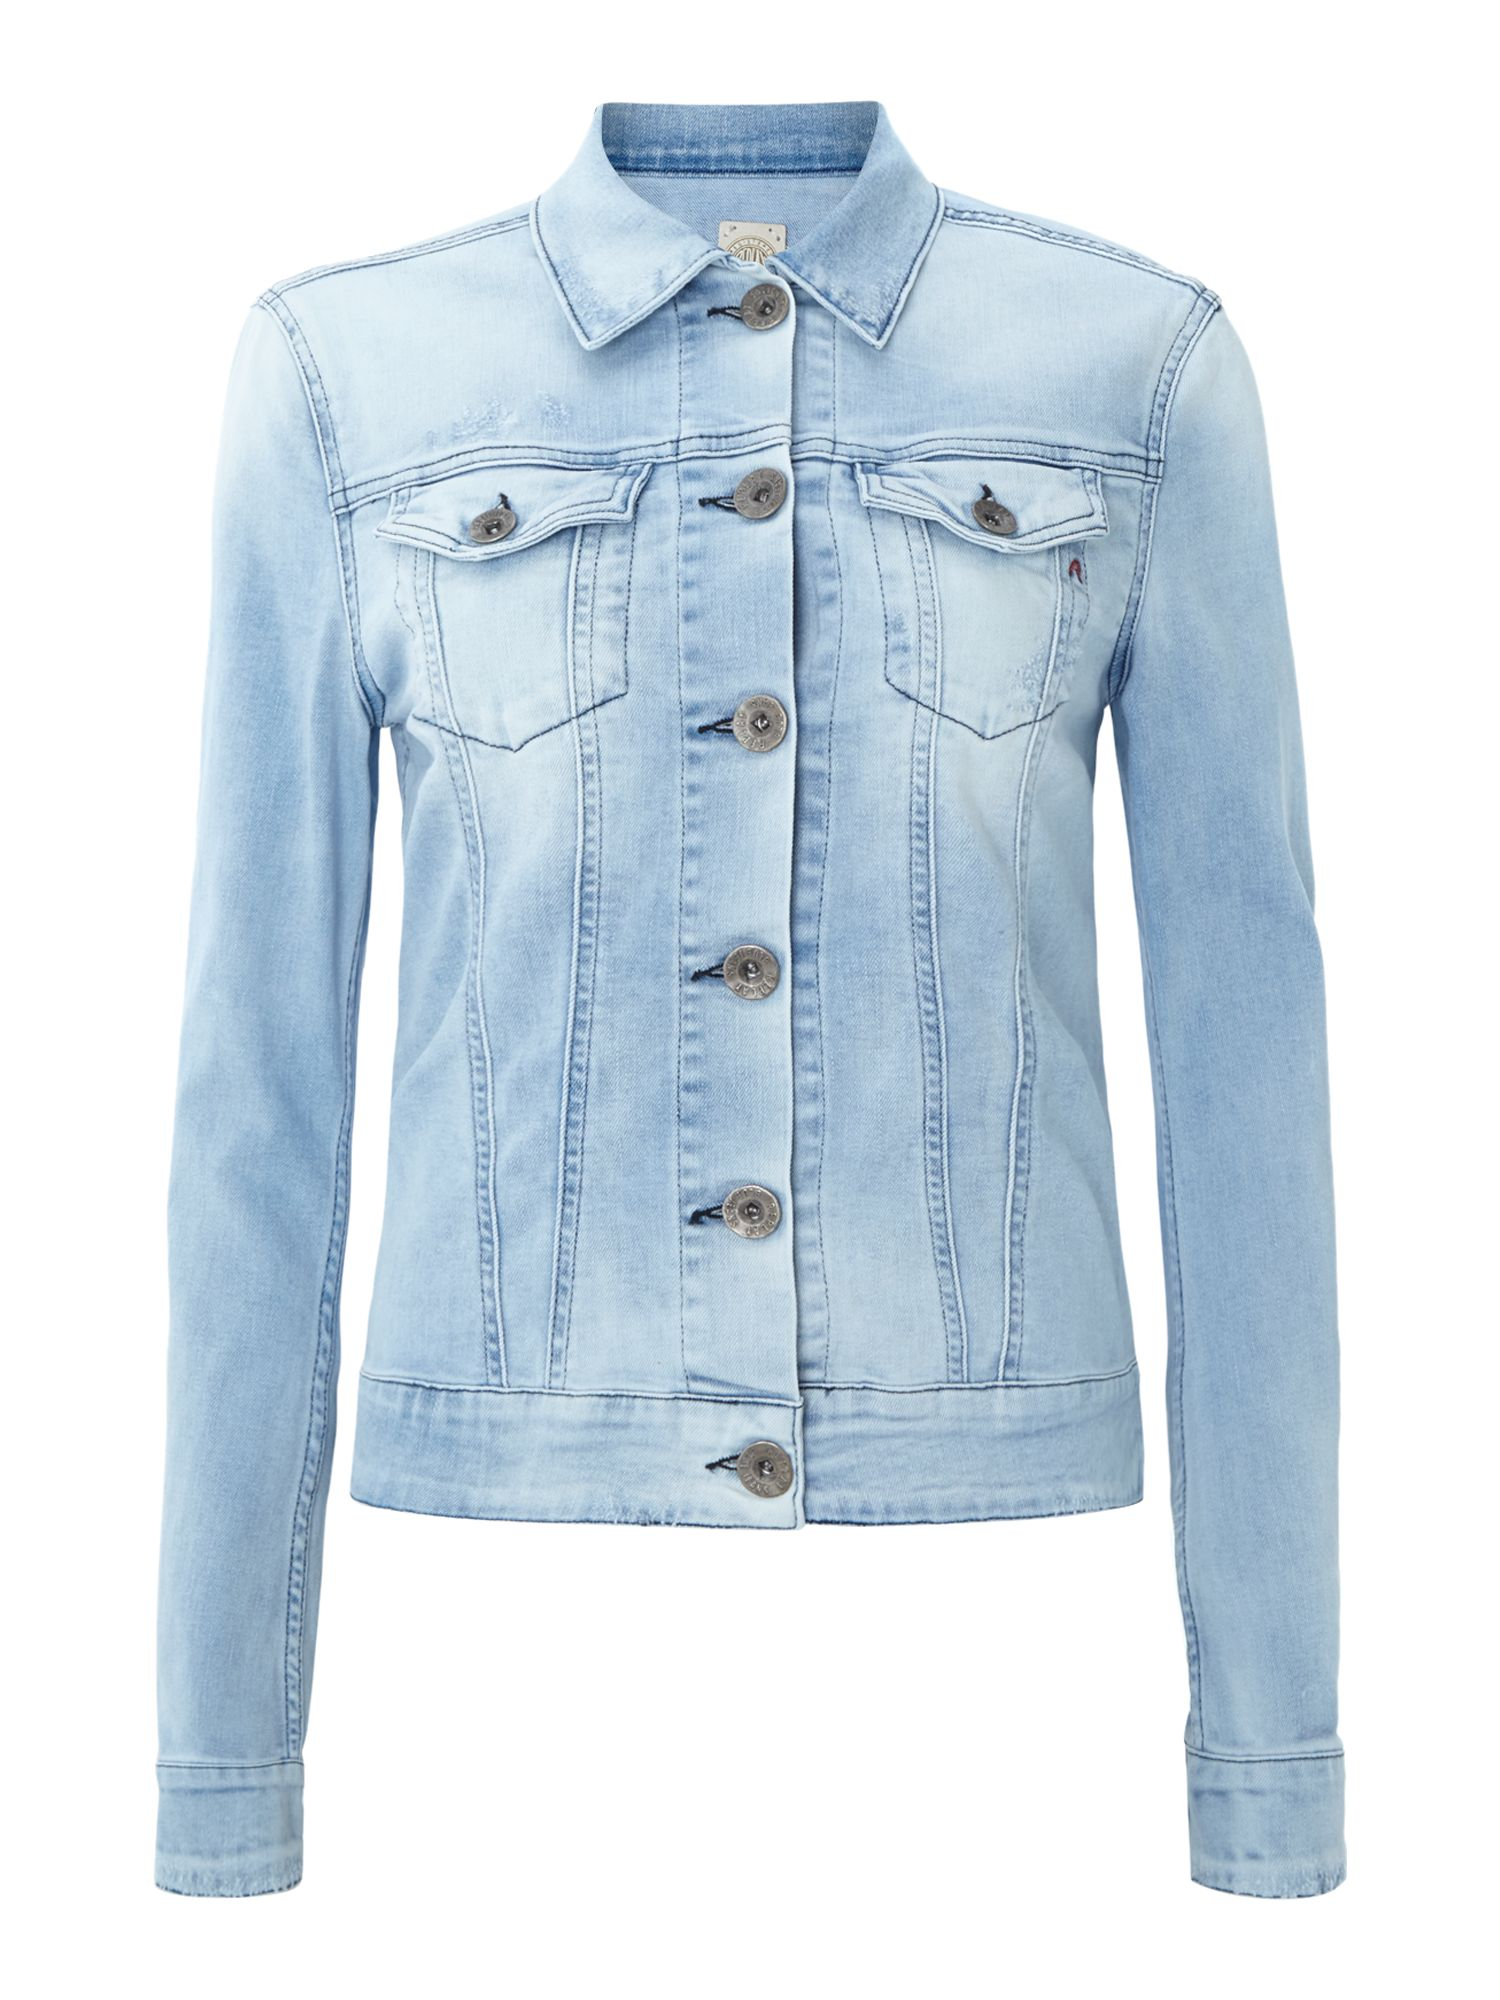 Stretch denim jacket with buttons